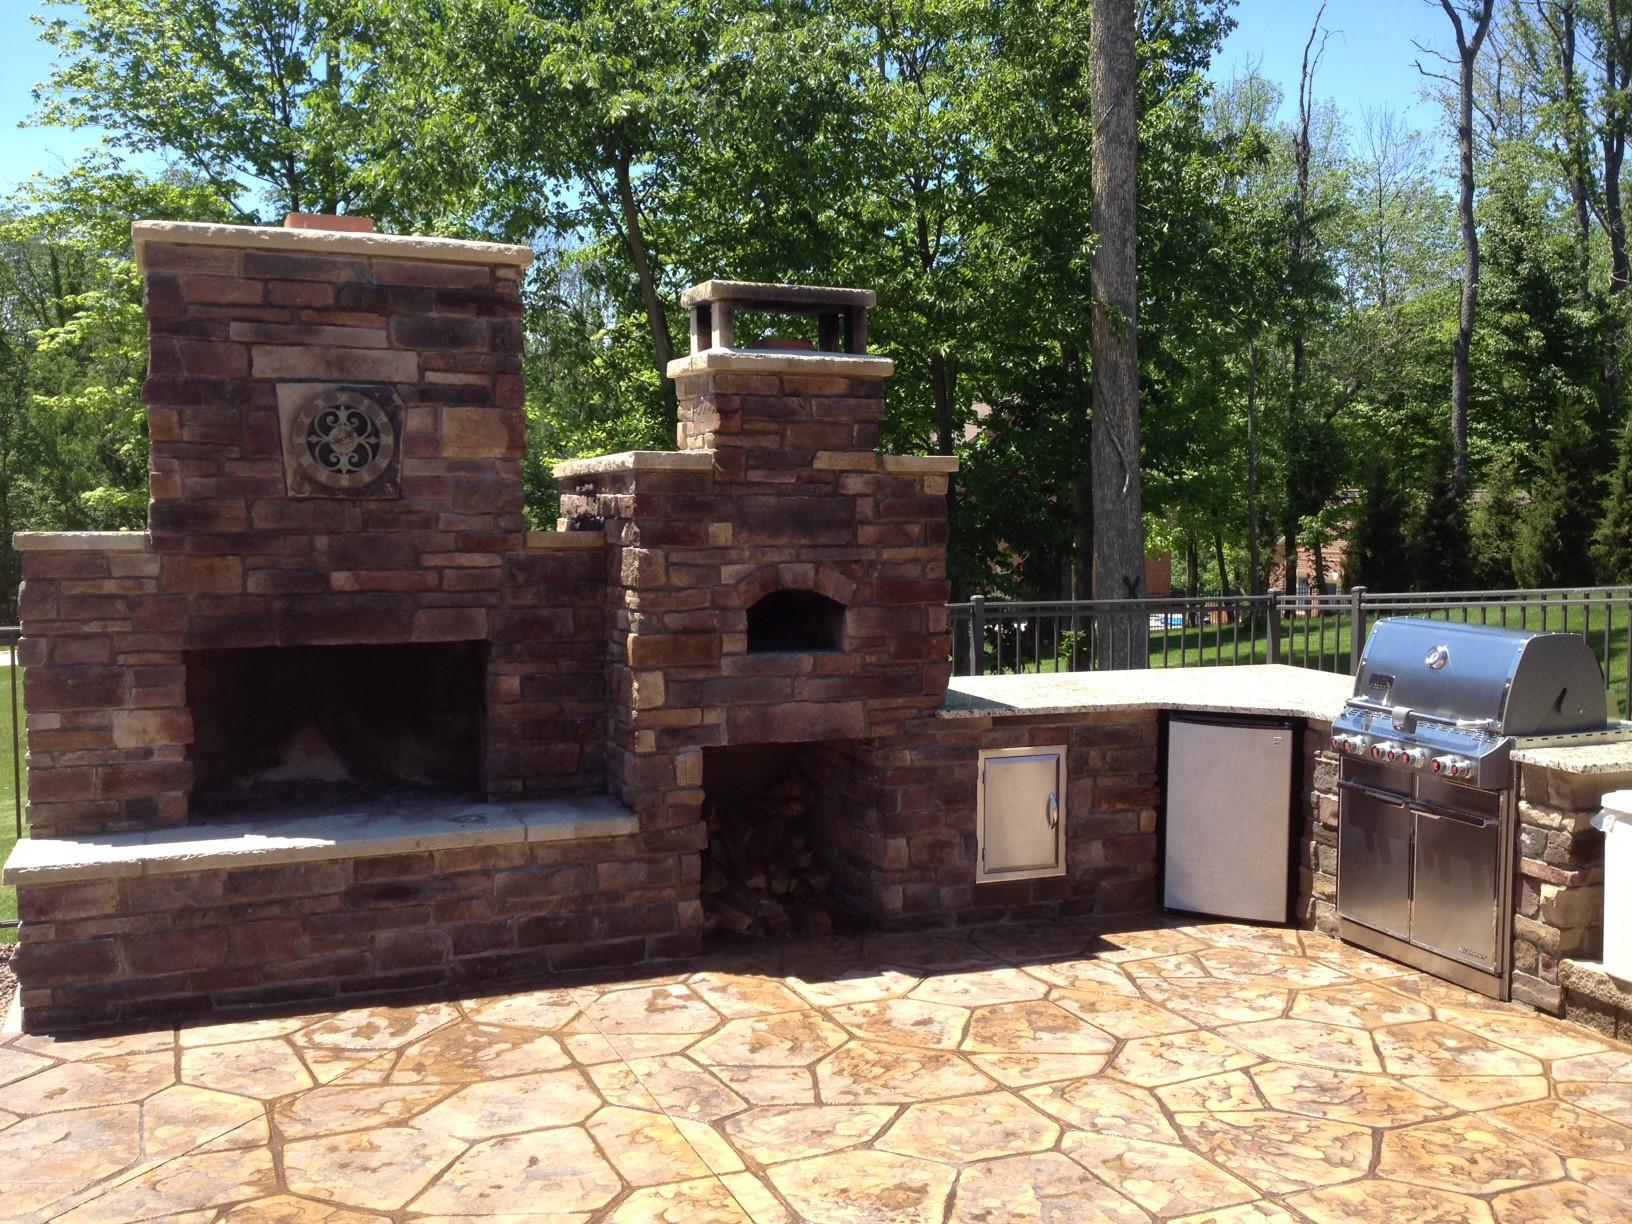 DIY Fireplace Outdoor  DIY Outdoor Fireplace and Pizza Oven bos